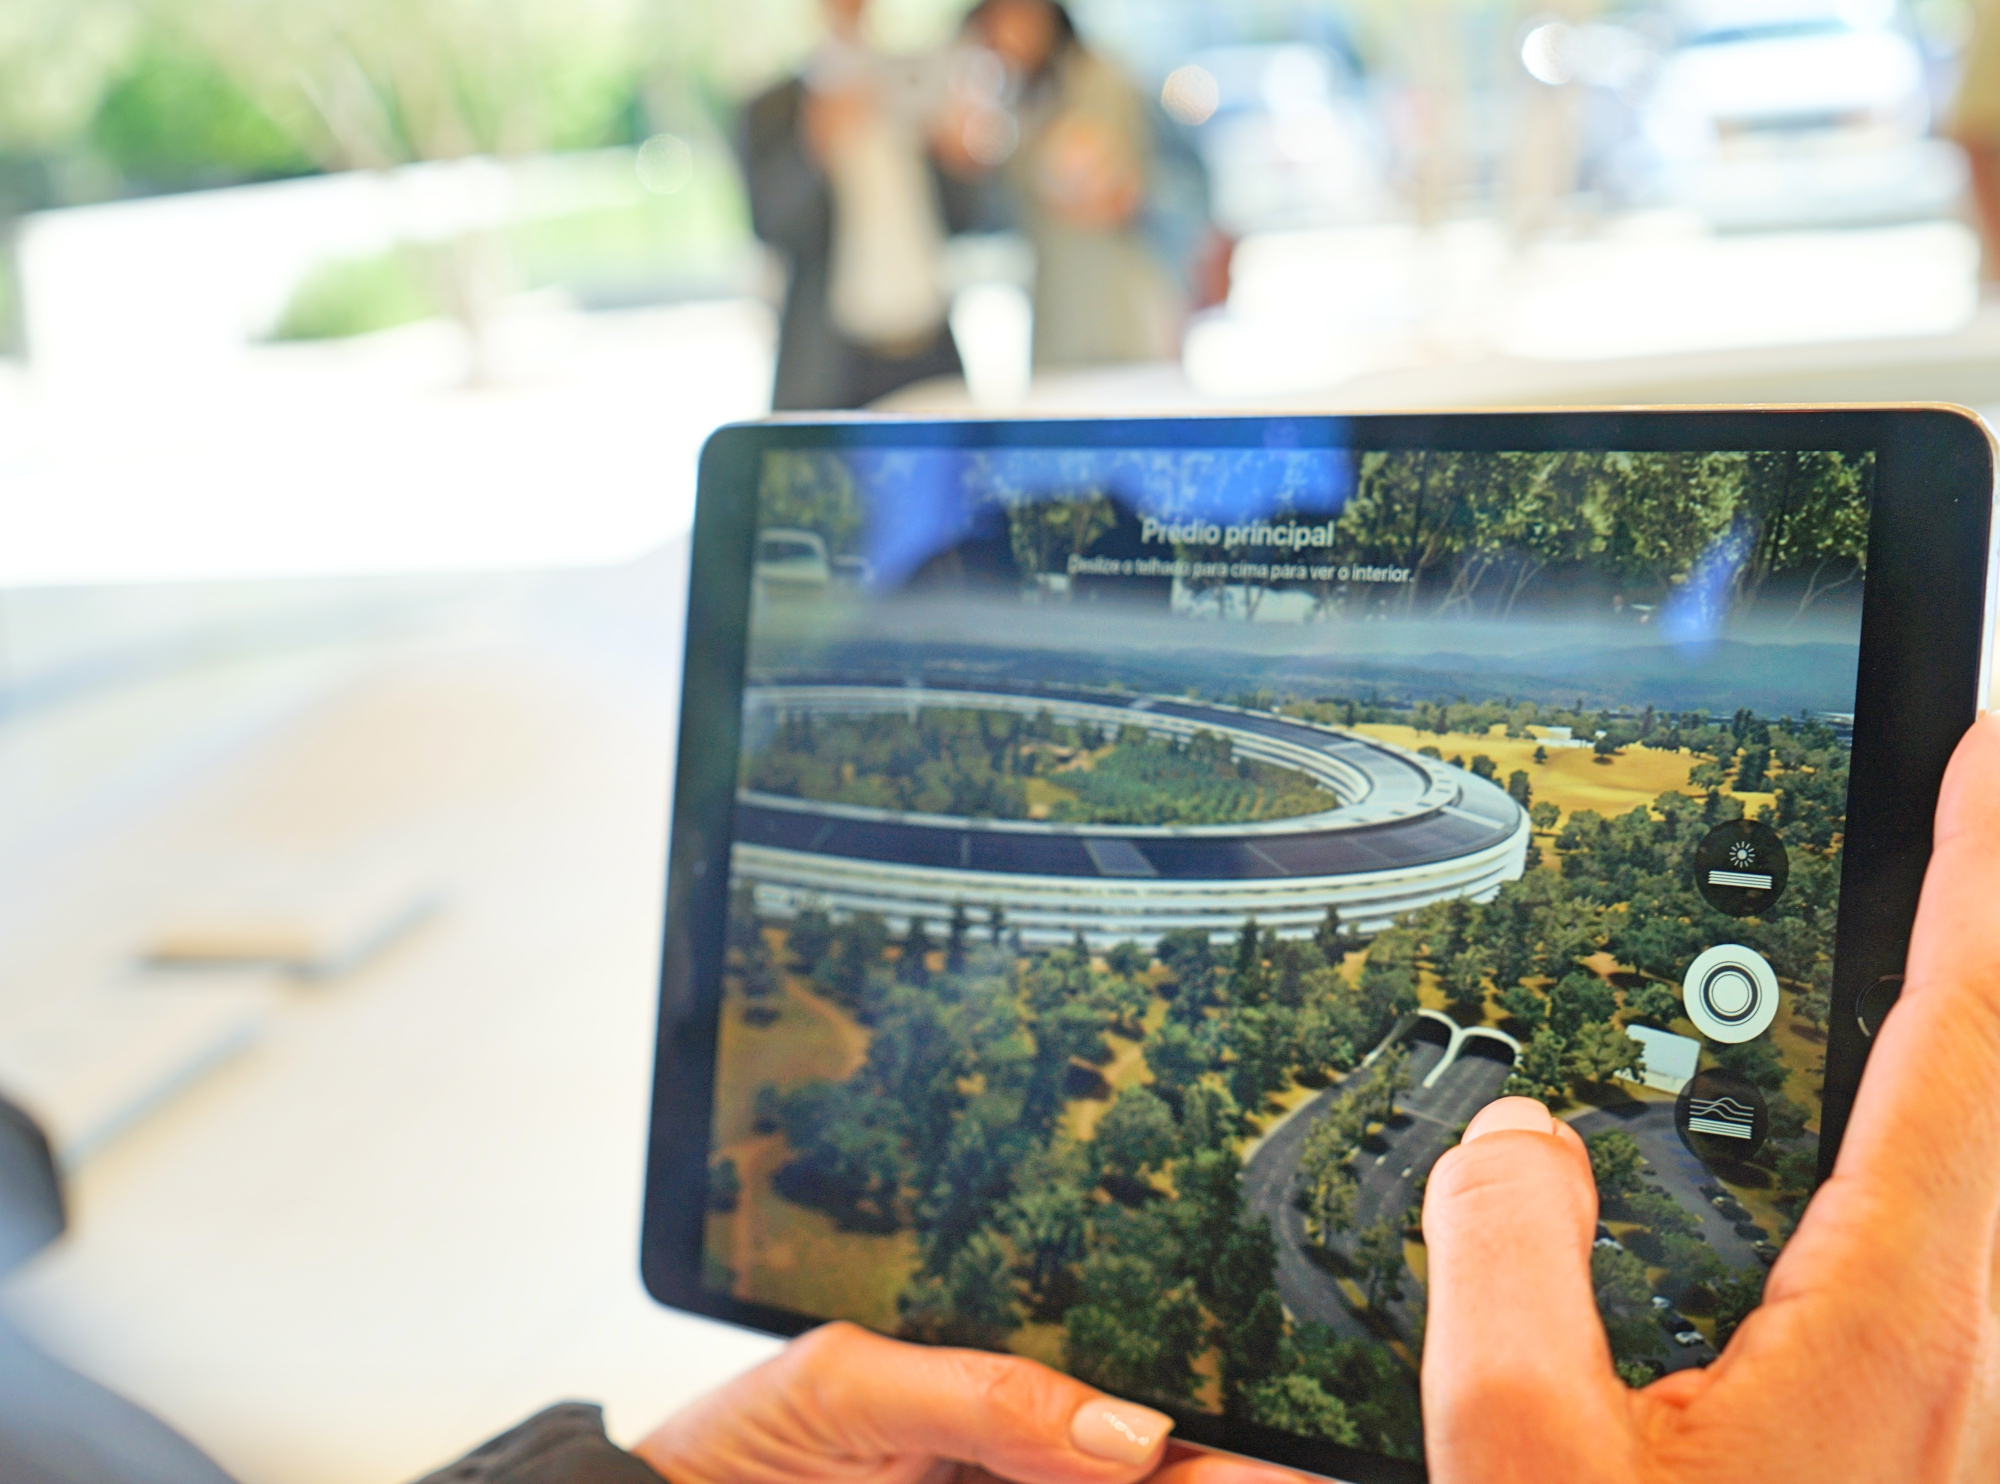 Tour Virtual no Apple Park em Cupertino usando um iPad - Hotel California Blog